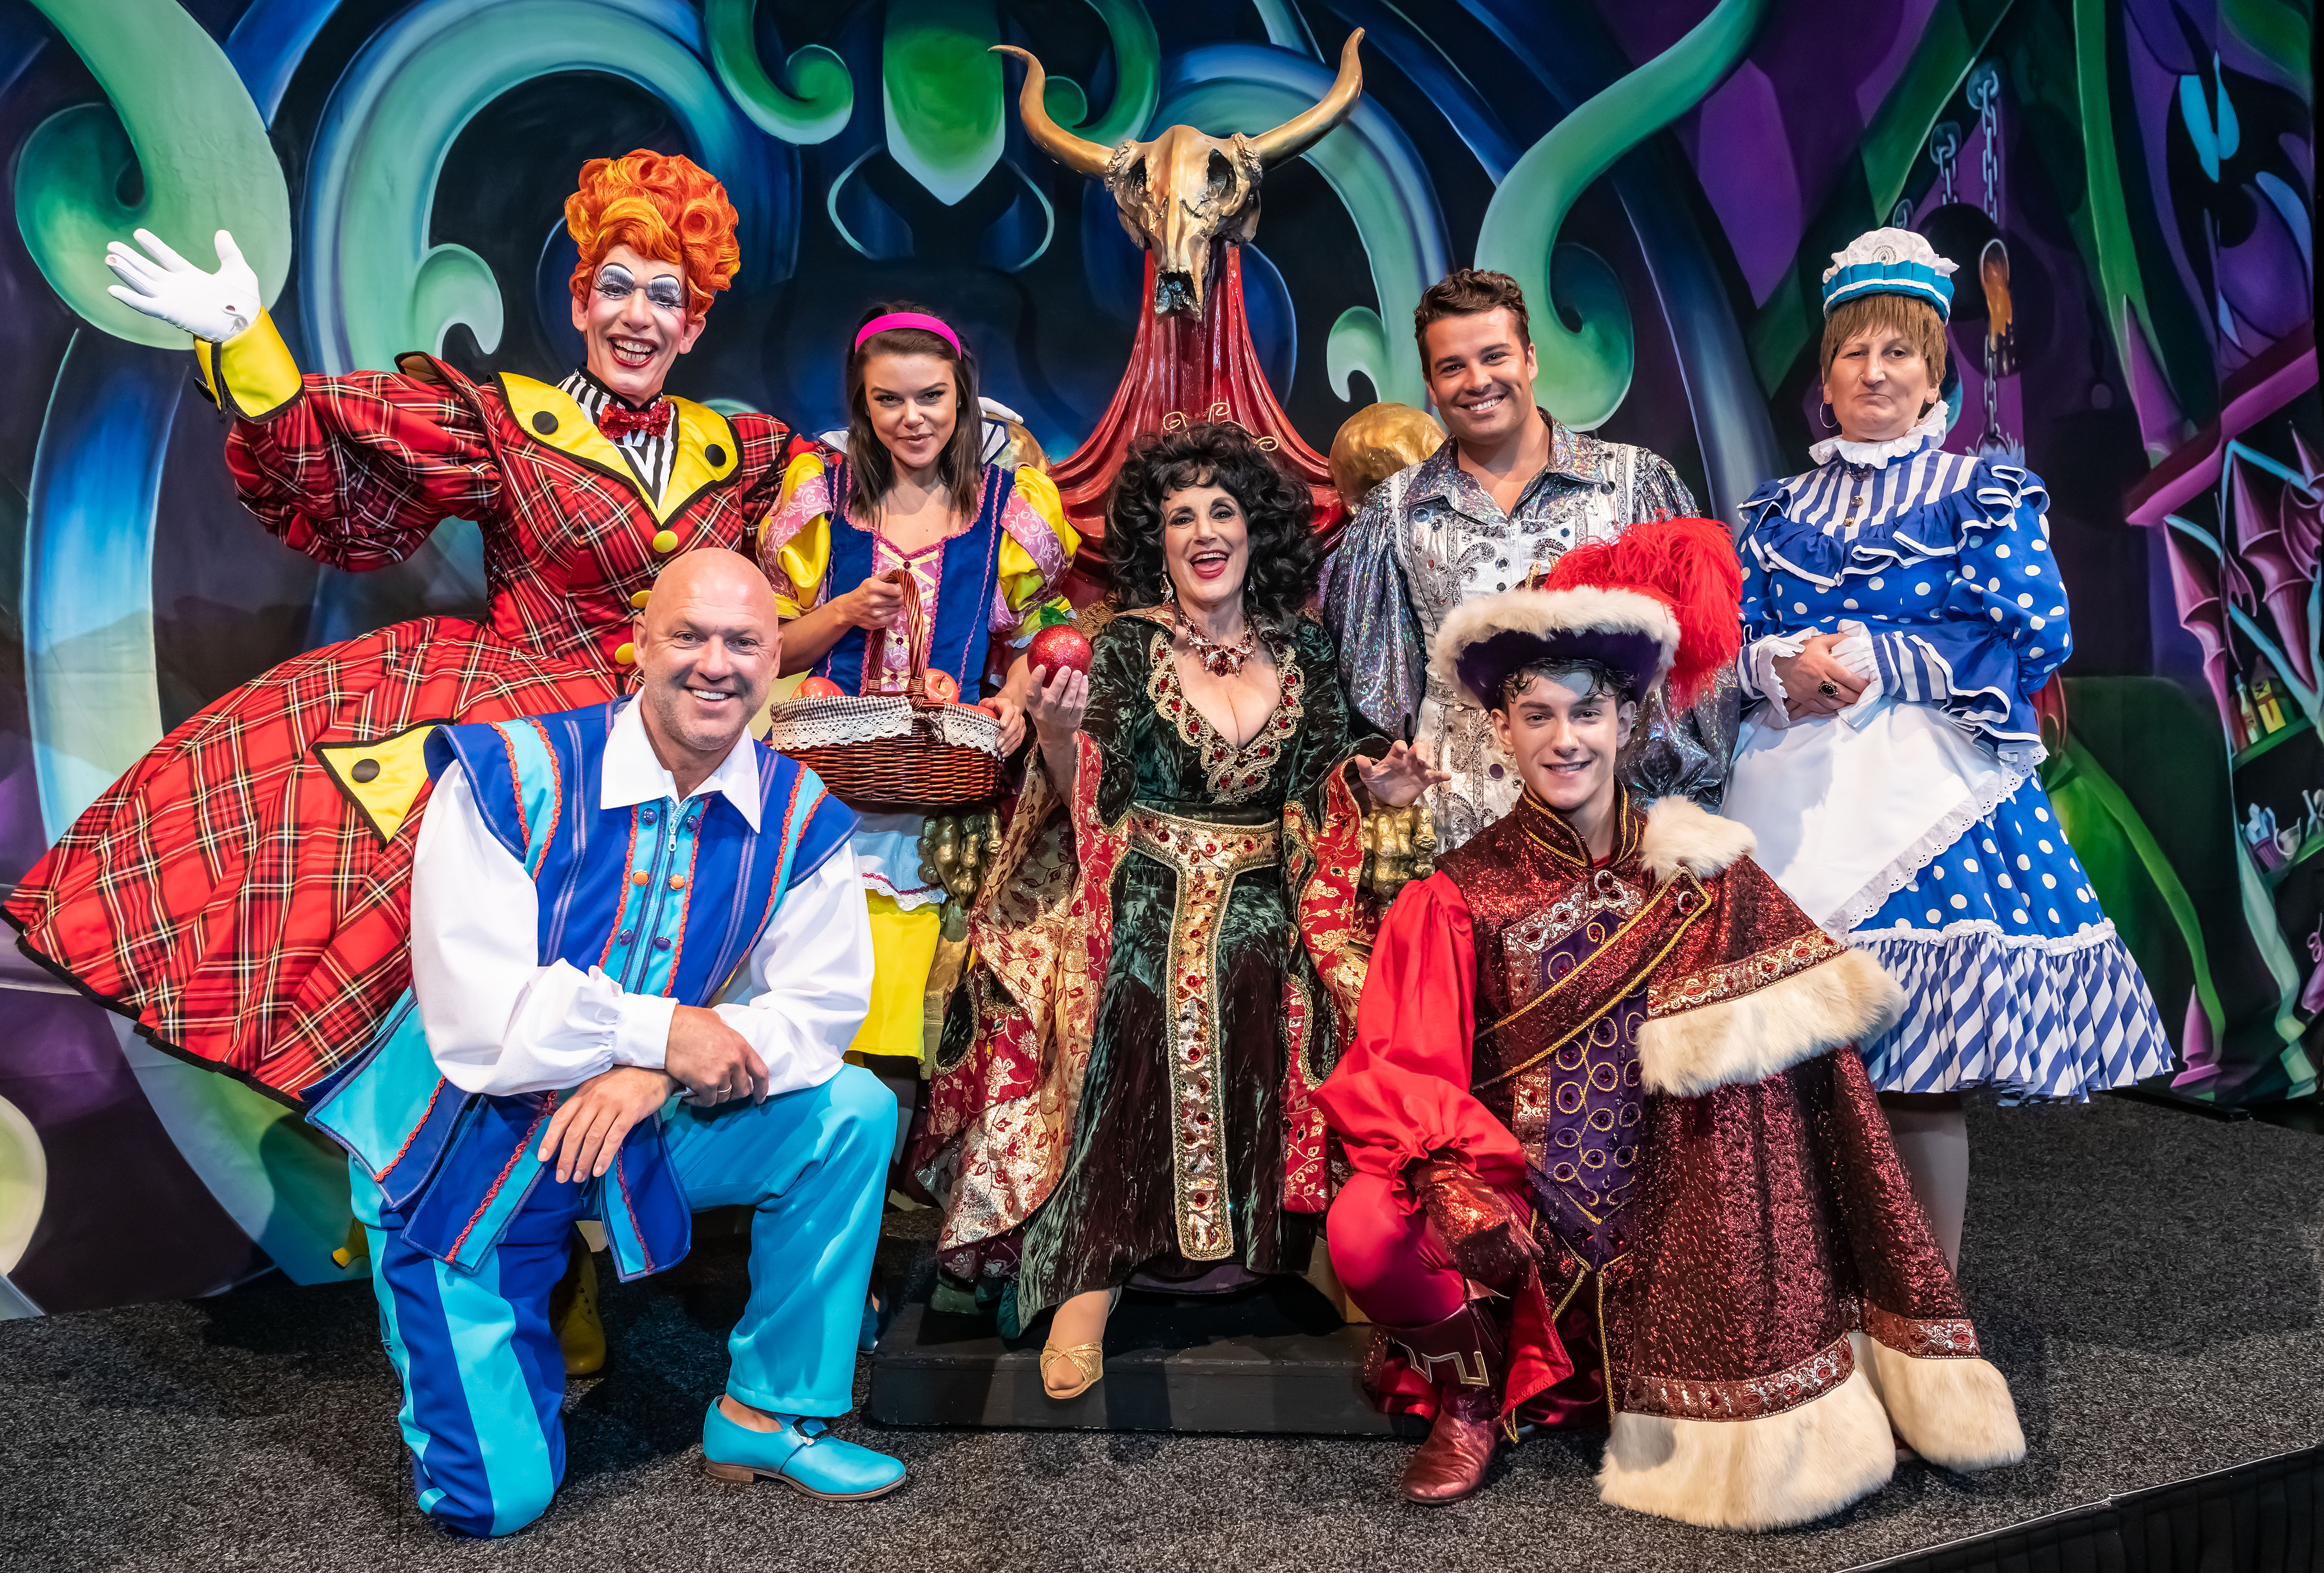 Andrew Blake Five Stars 2 cast of snow white and the seven dwarfs together for the